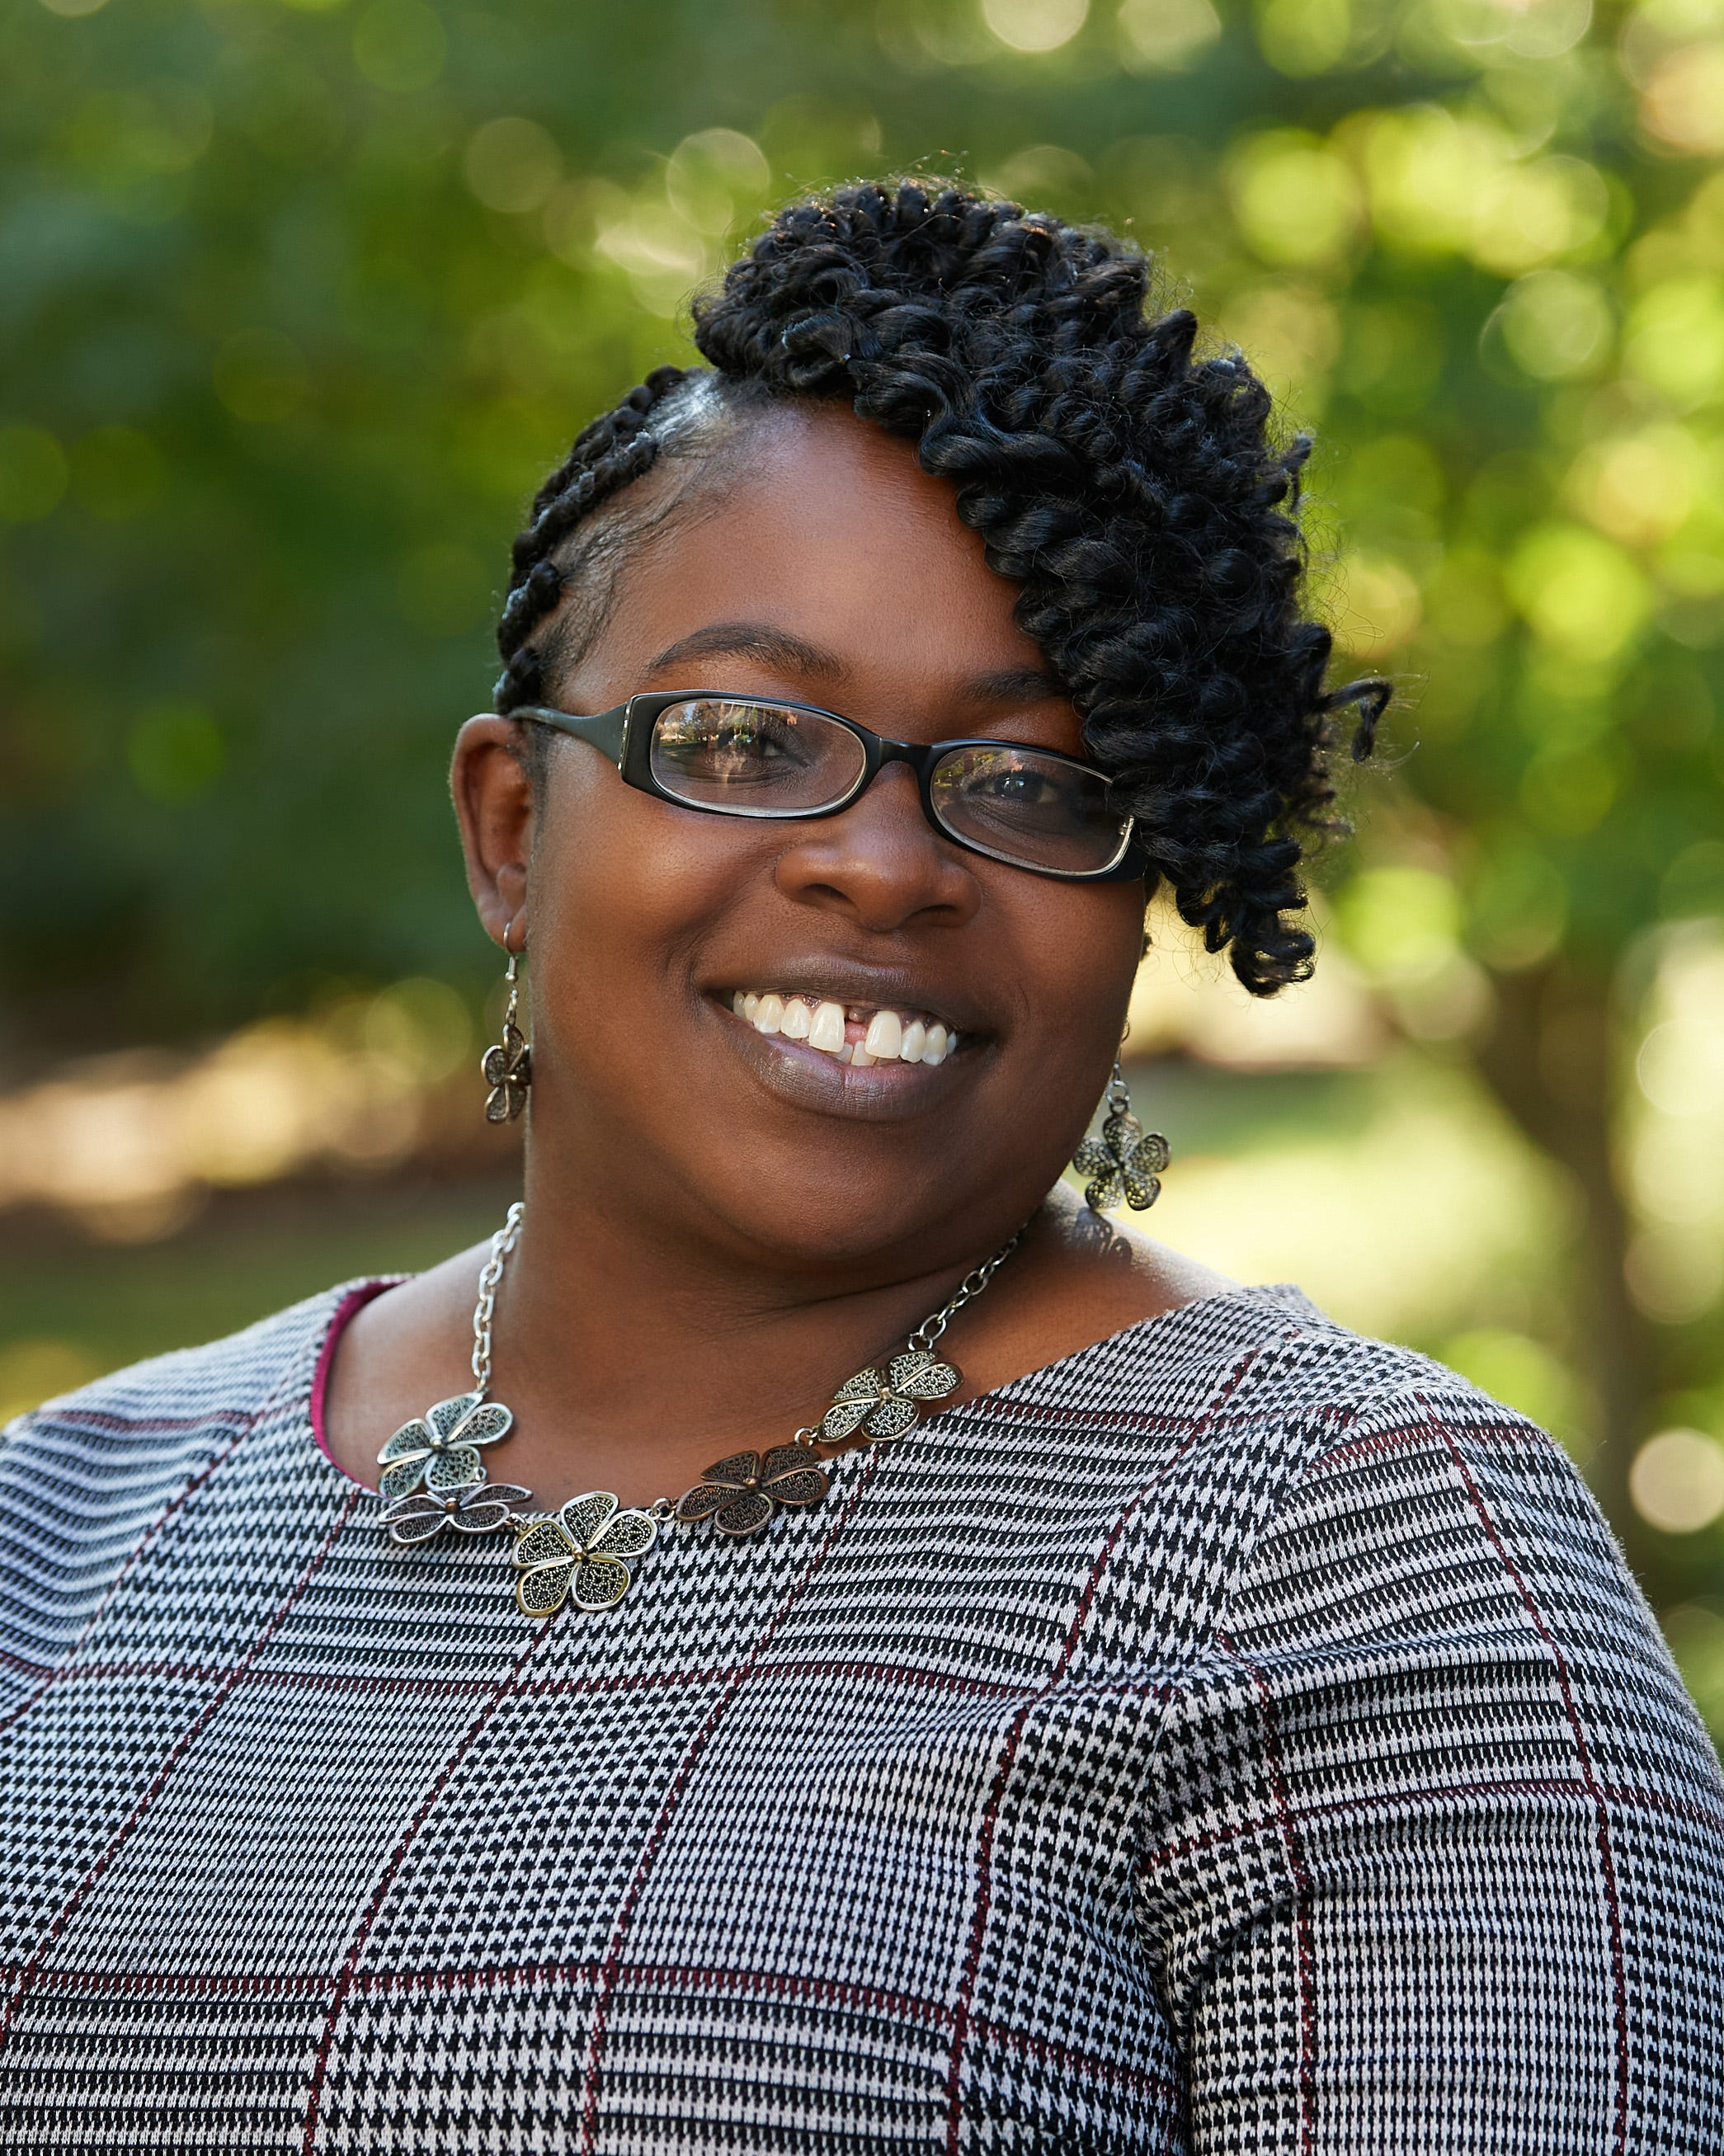 Keena Williams, Albion College's chief belonging officer and Title IX coordinator